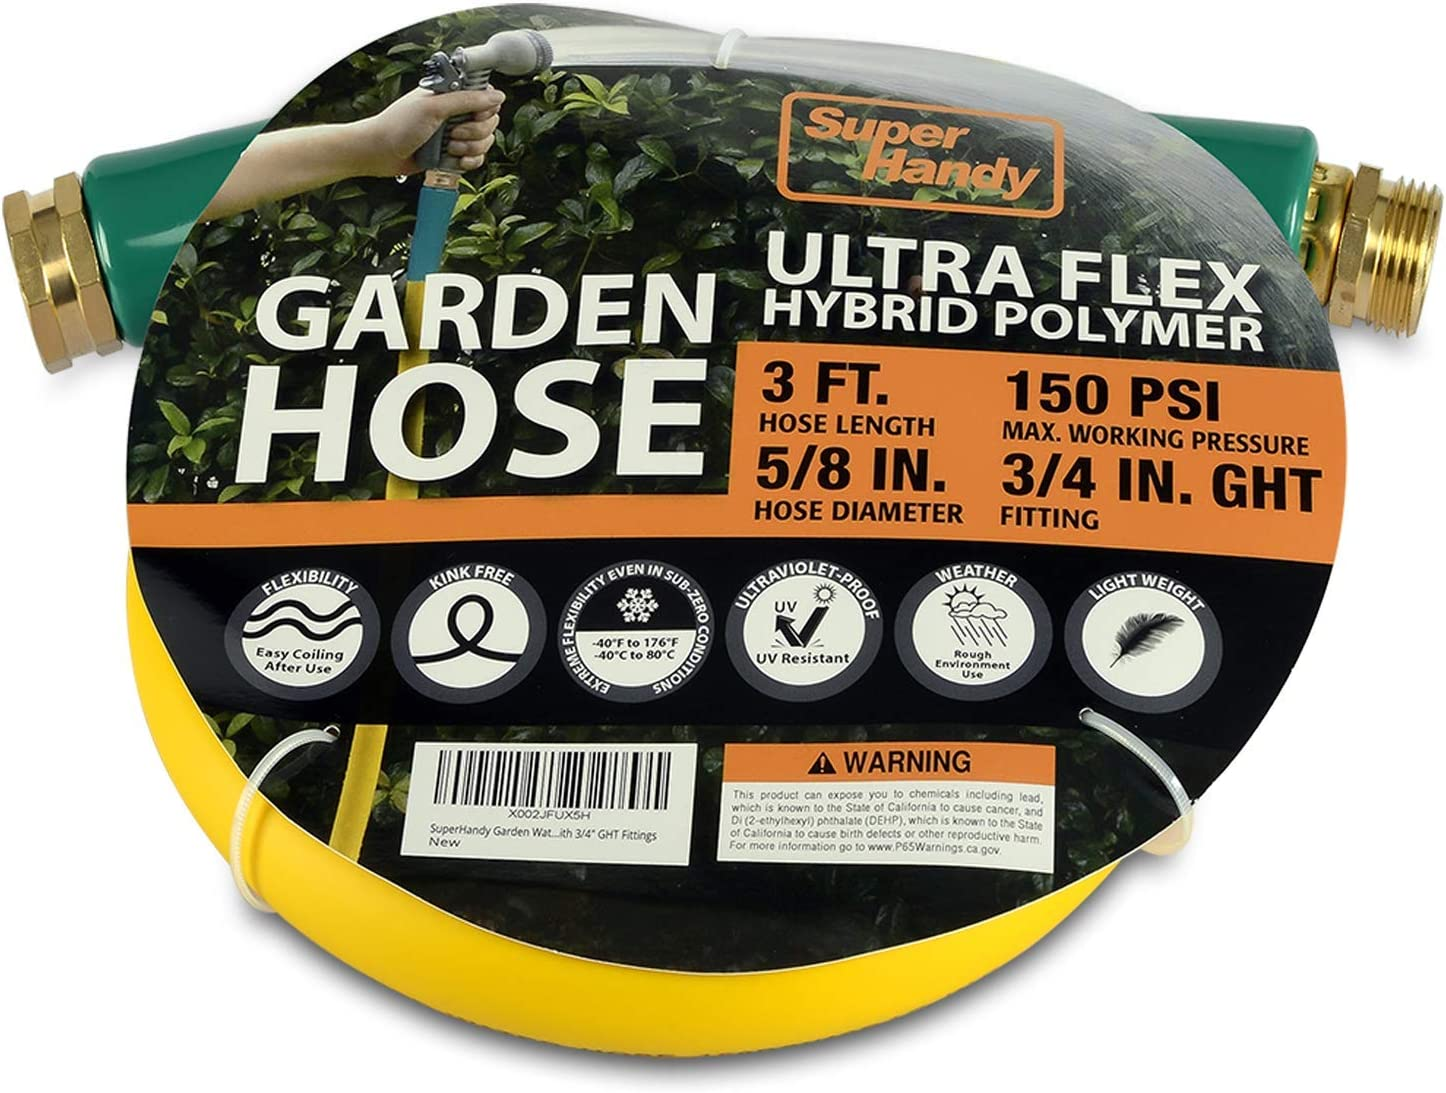 "SuperHandy Garden Lead-in Water Hose 5/8"" Inch x 3' Foot Heavy Duty Premium Commercial Ultra Flex Hybrid Polymer Inlet Hose Max Pressure 150 PSI/10 BAR with 3/4"" GHT Fittings"